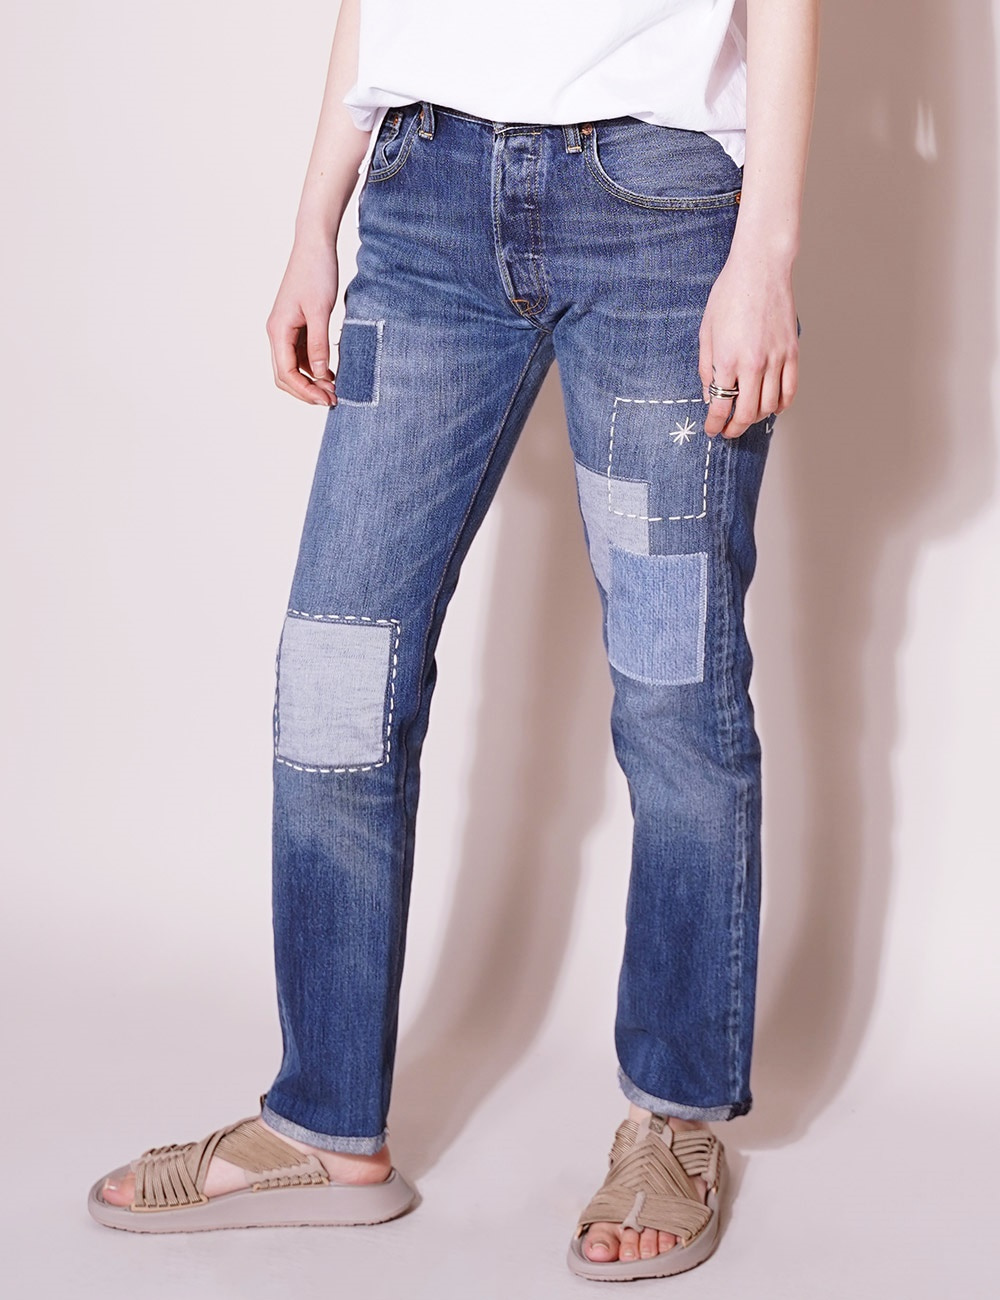 ATELIER & REPAIRS : THE DETROIT (SIZE 28)